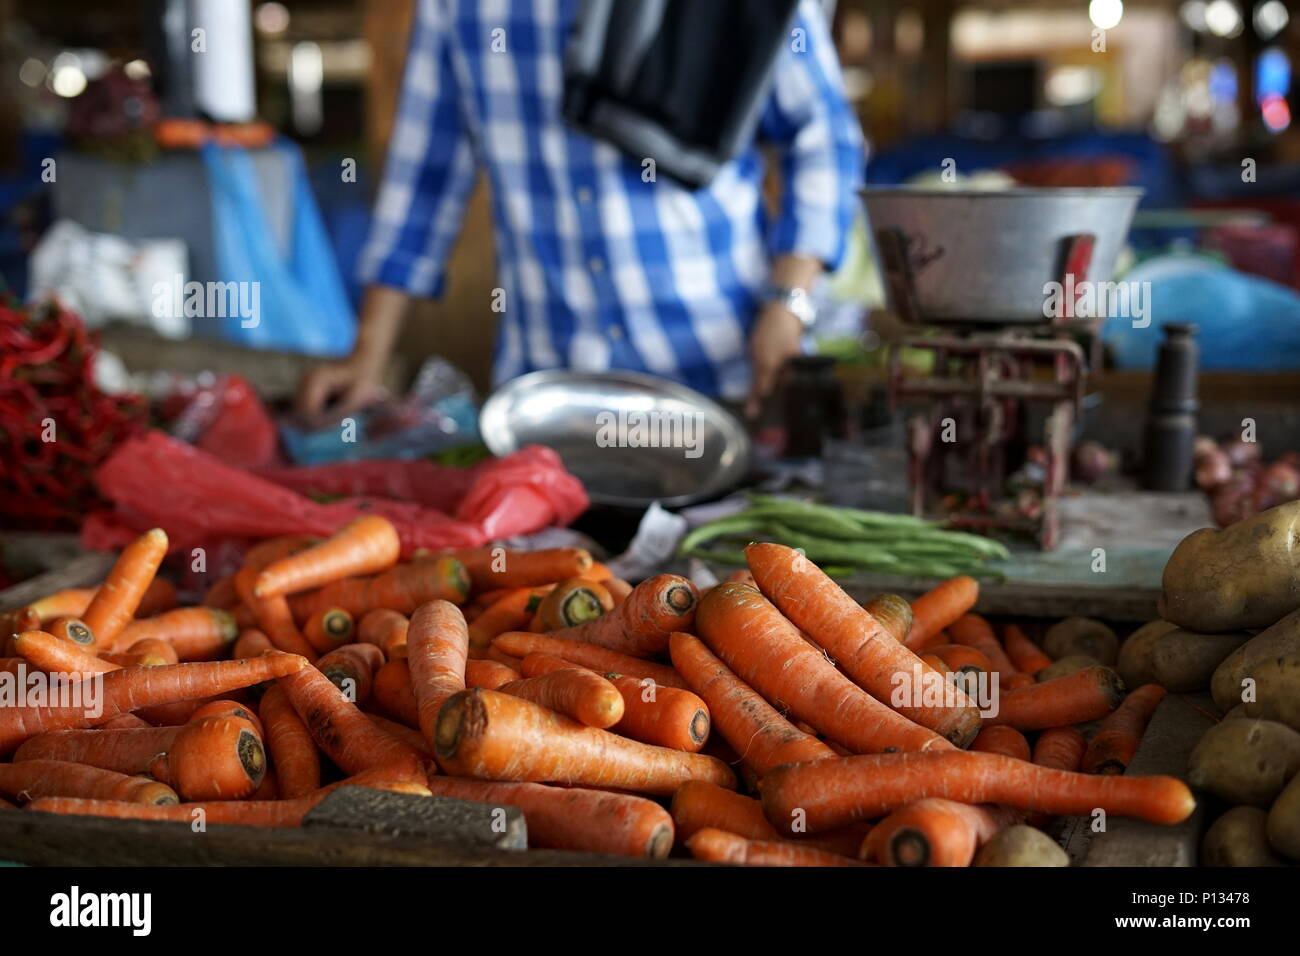 Banda Aceh, Aceh / Indonesia - May 25 2018  : Vegetable Vendor selling Fresh Organic carrot in farmer's market in Banda Aceh, Indonesia - Stock Image